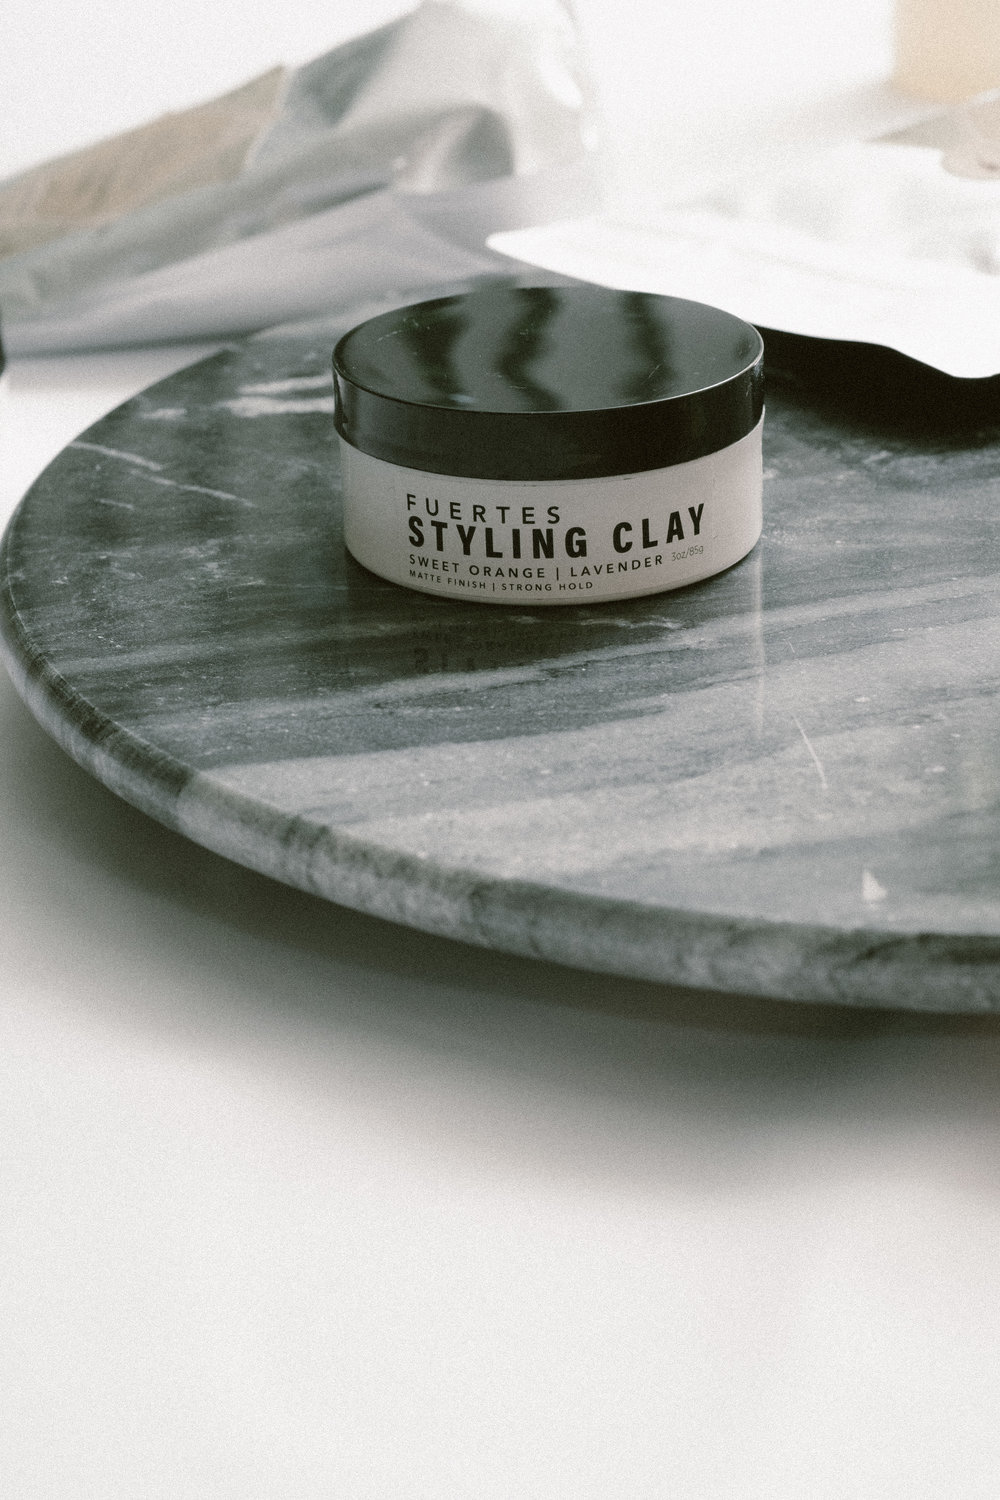 shop - Shop hair products. Made from the highest quality organic ingredients and hand-poured in Charlotte, North Carolina.